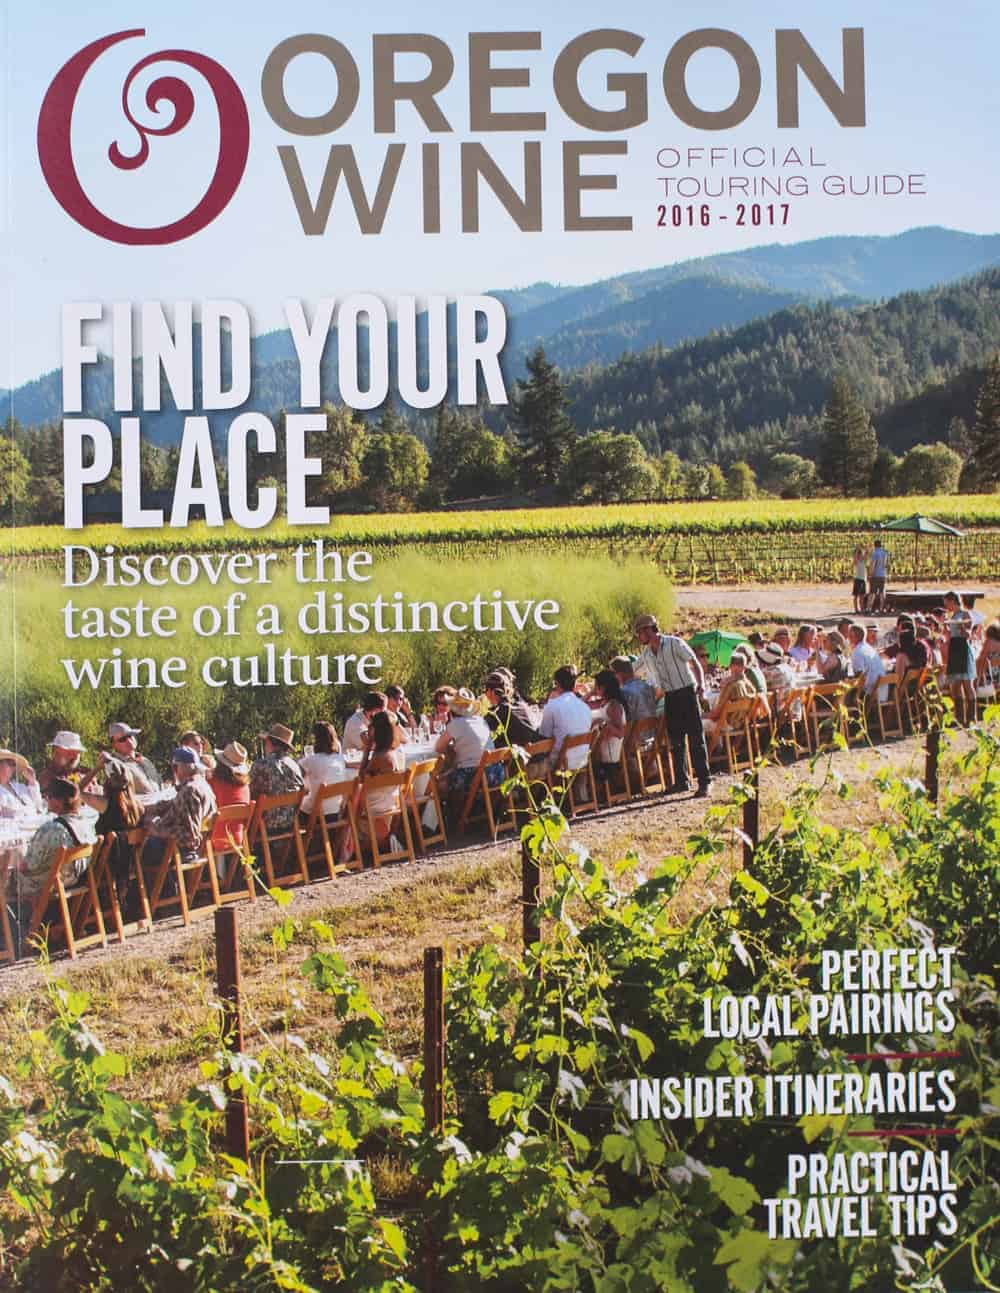 Oregon Wine Official Touring Guide 2016-2017